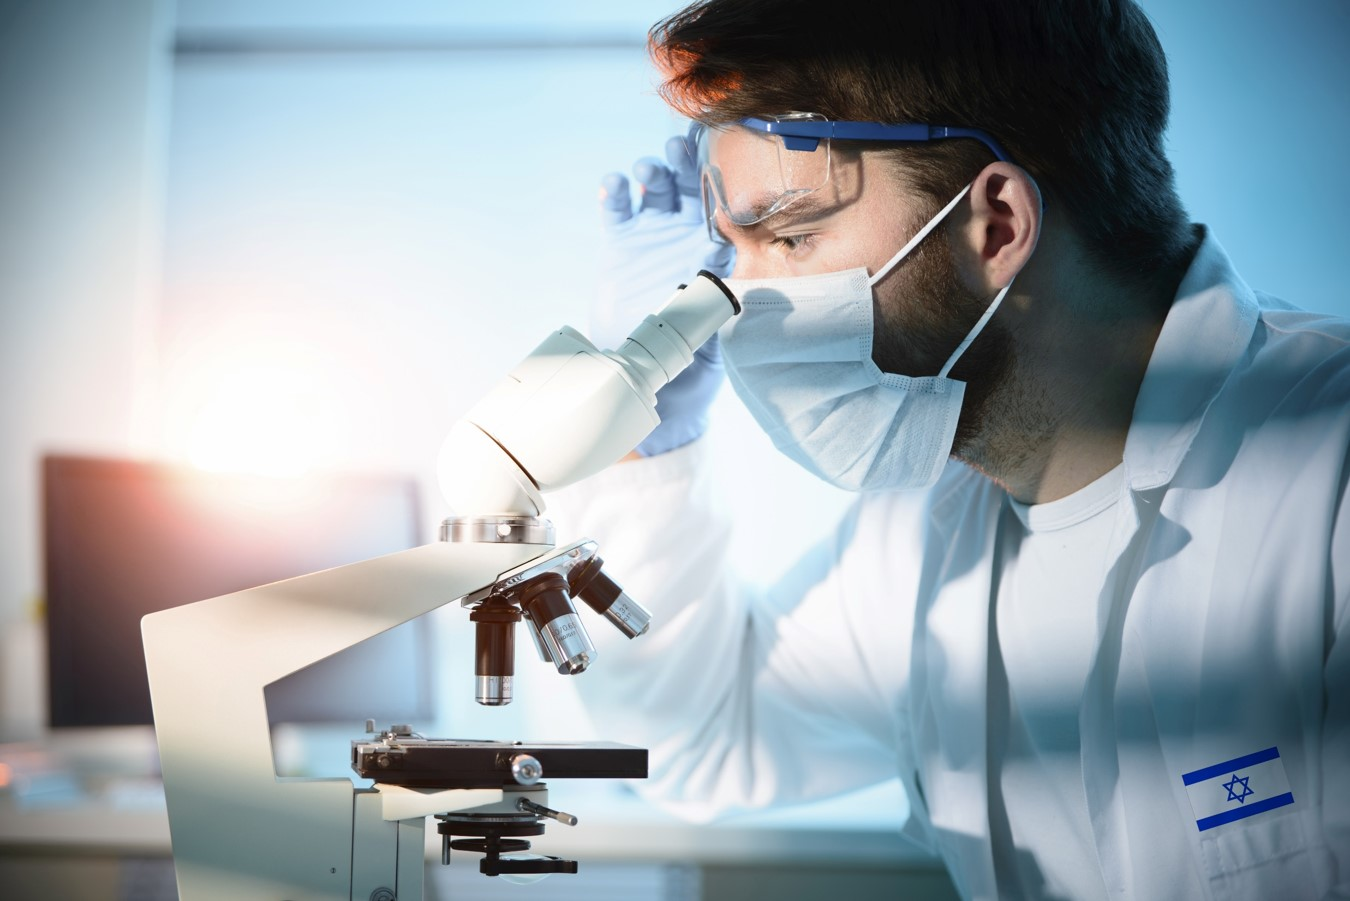 10 MedTech Trends To Monitor in 2015